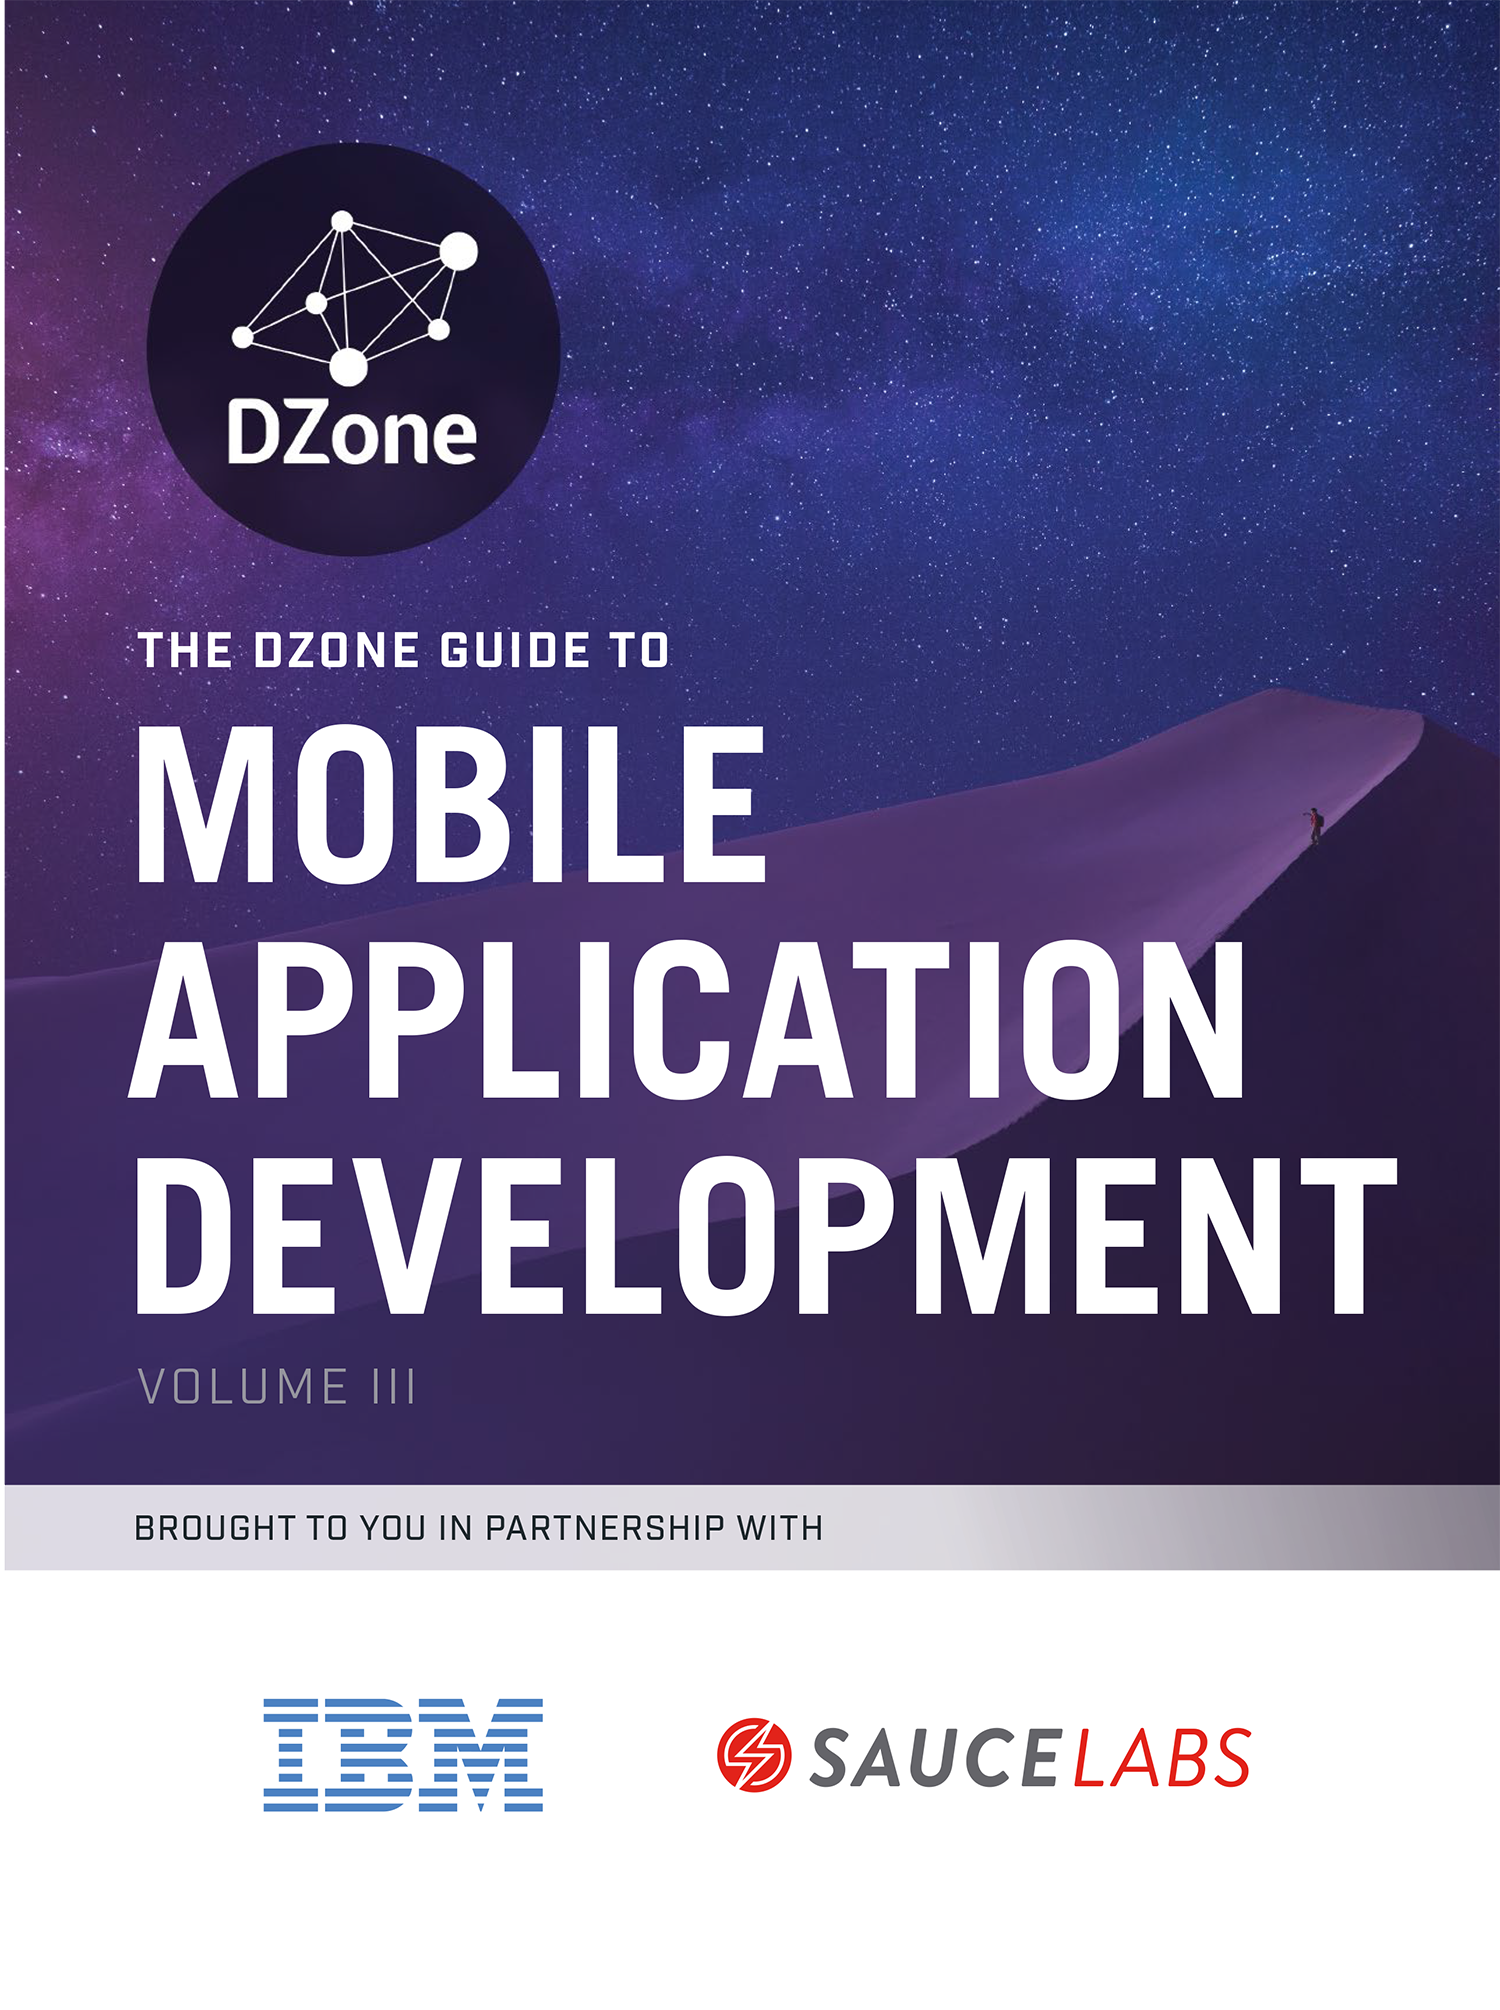 DZone 2016 Guide to Mobile Application Development